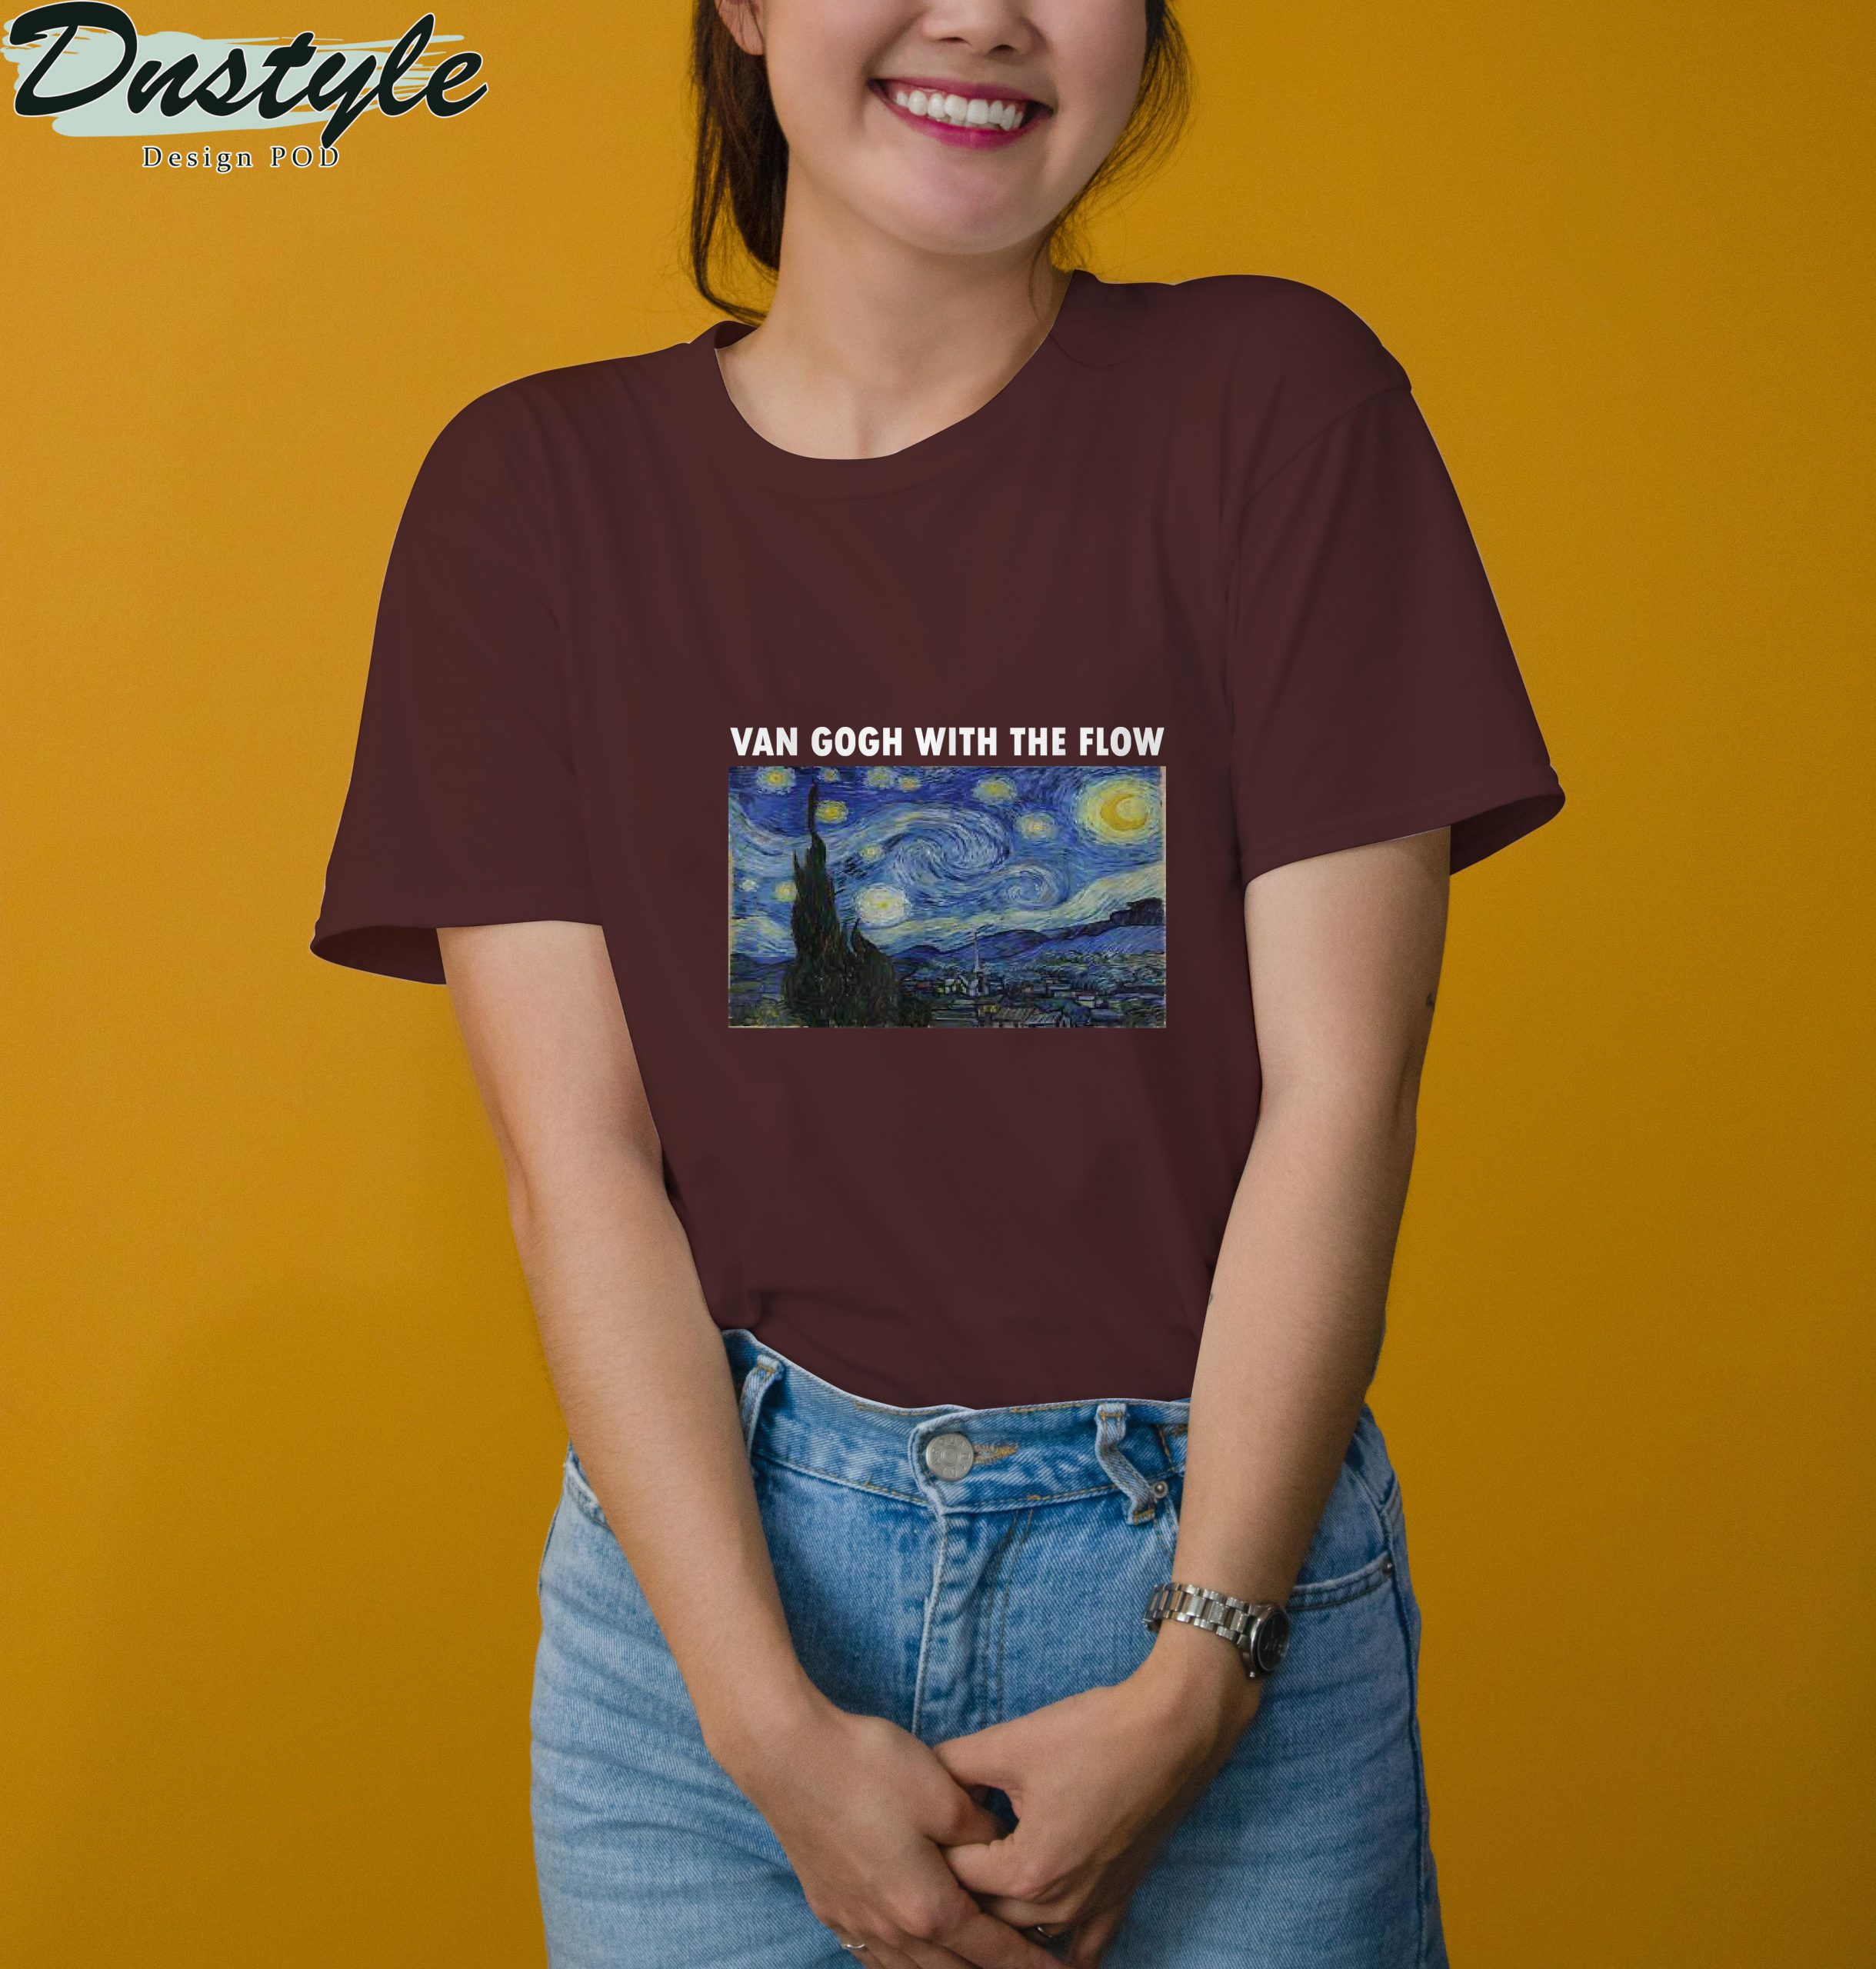 Van gogh with the flow t-shirt 3